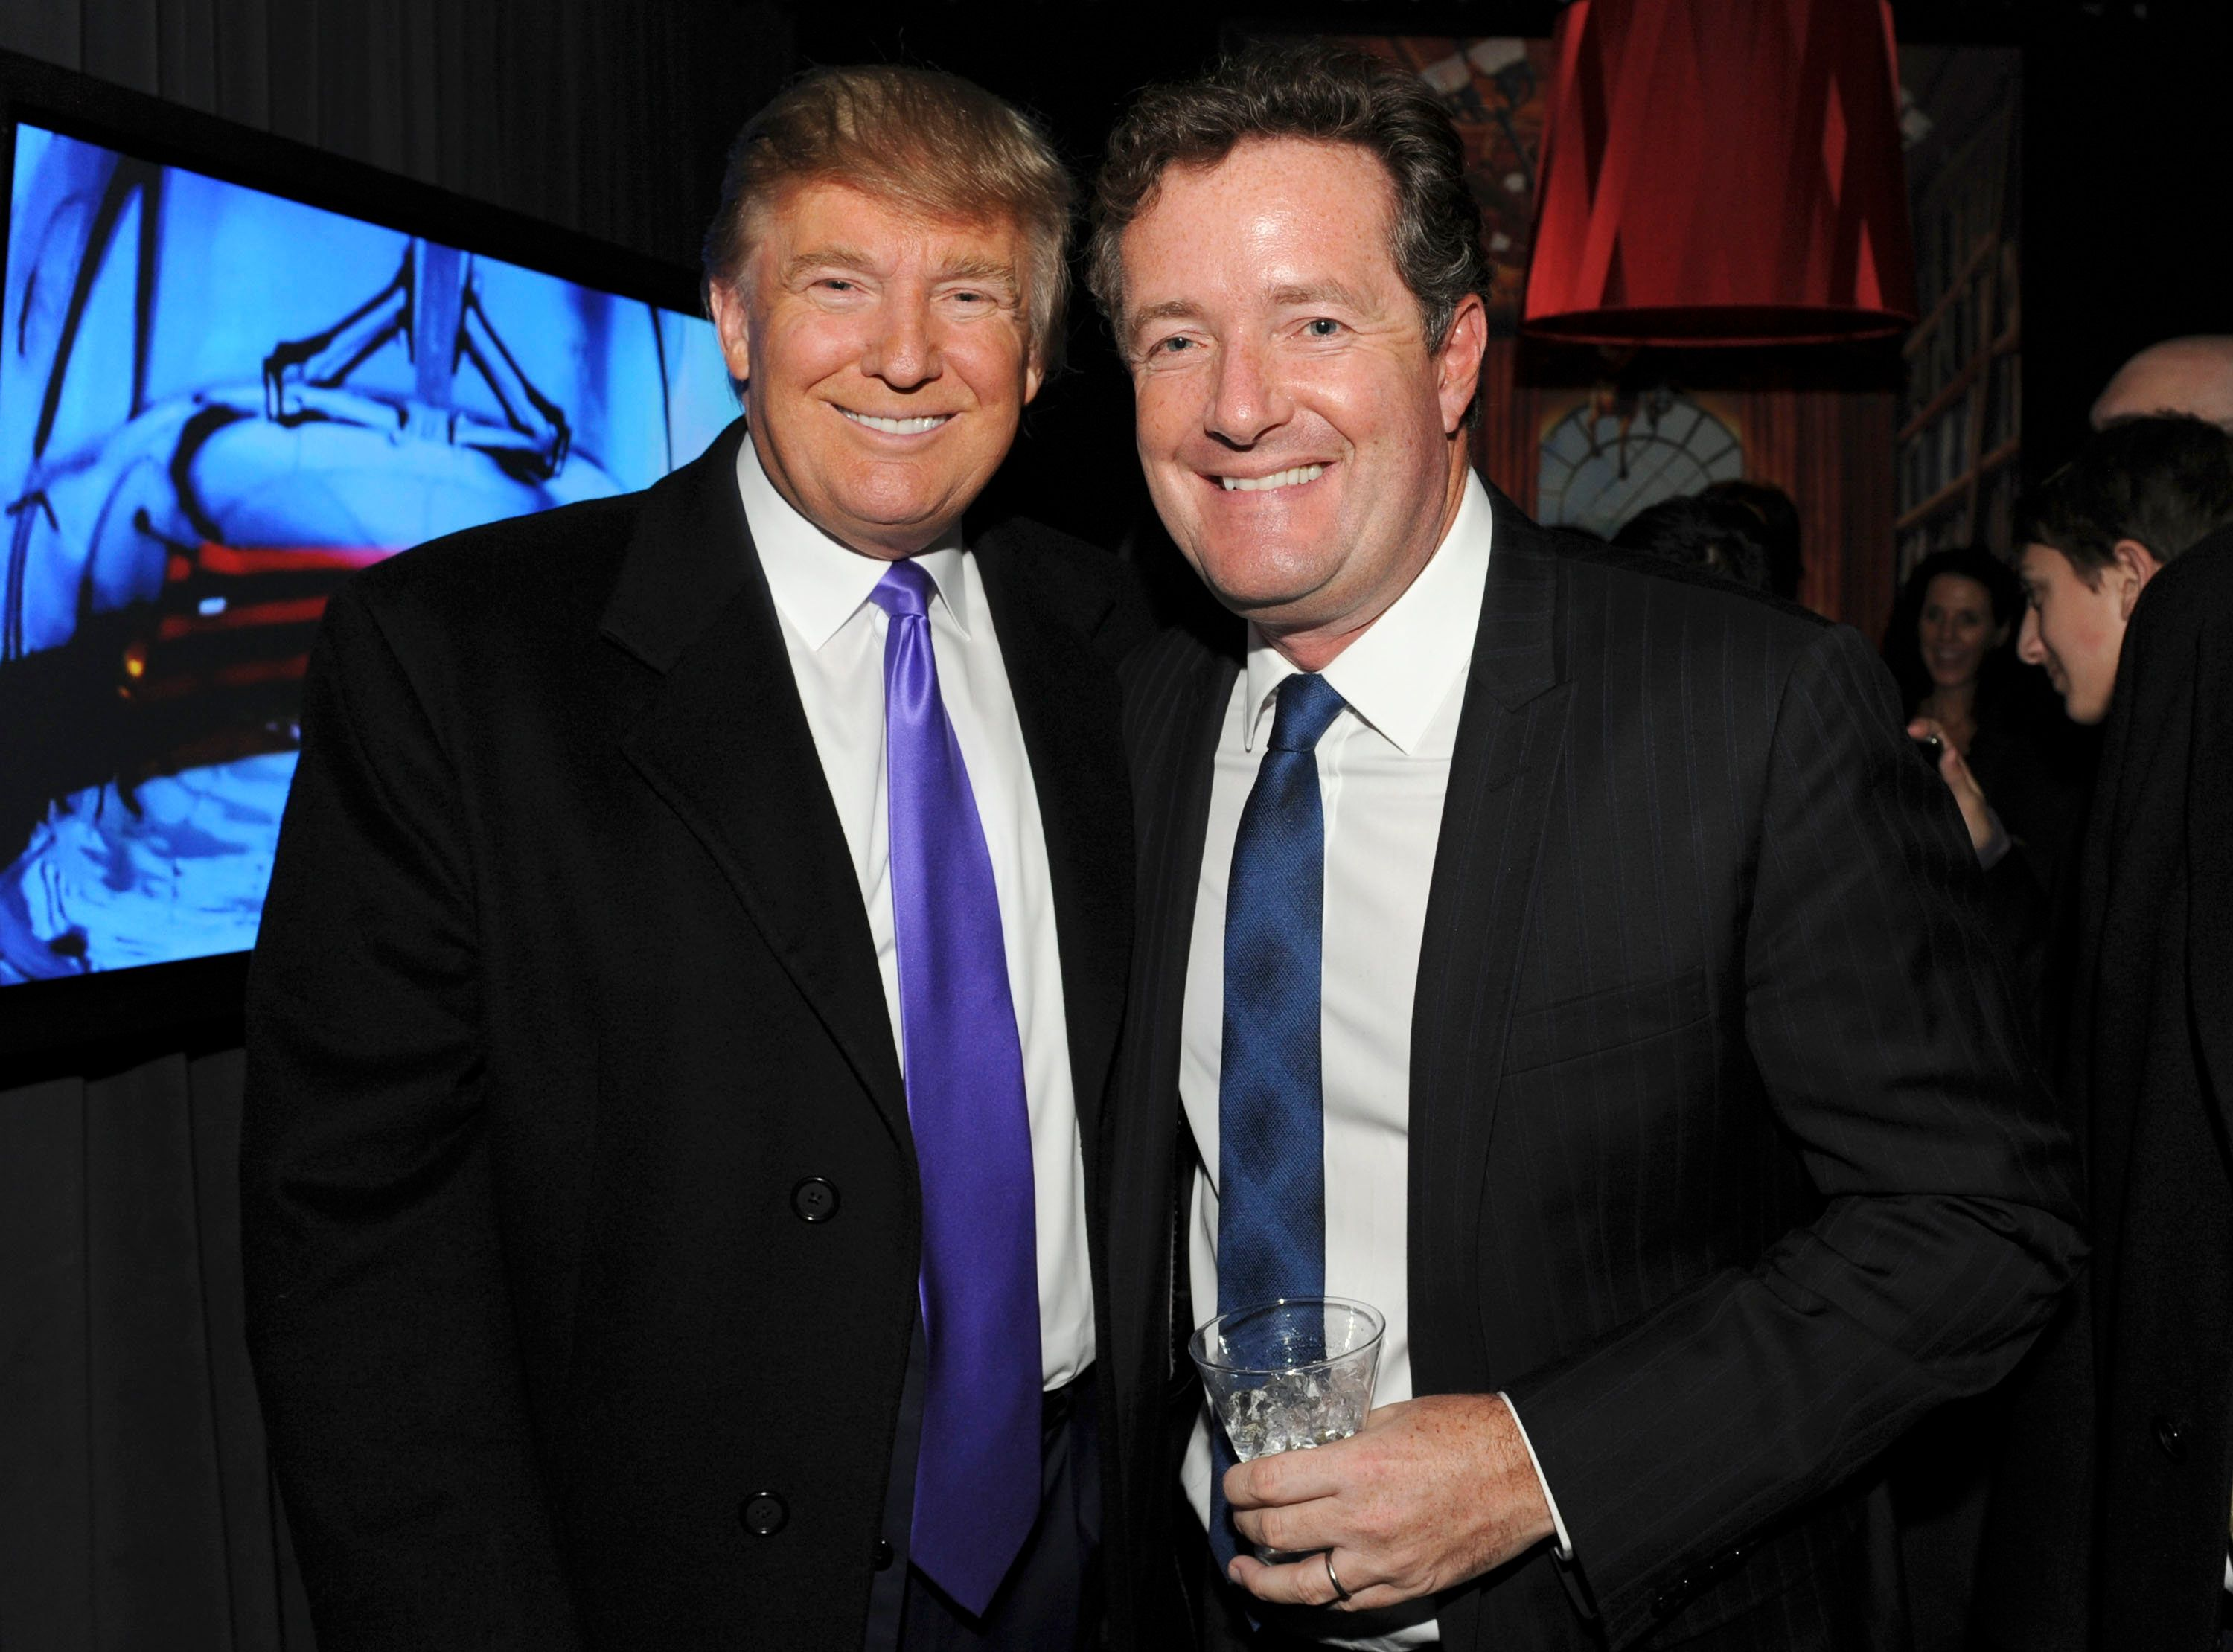 NEW YORK - NOVEMBER 10: Television Personality Donald Trump and journalist Piers Morgan attend the celebration of Perfumania and Kim Kardashian�s appearance on NBC�s 'The Apprentice' at the Provocateur at The Hotel Gansevoort on November 10, 2010 in New York, New York.  (Photo by Mathew Imaging/WireImage)